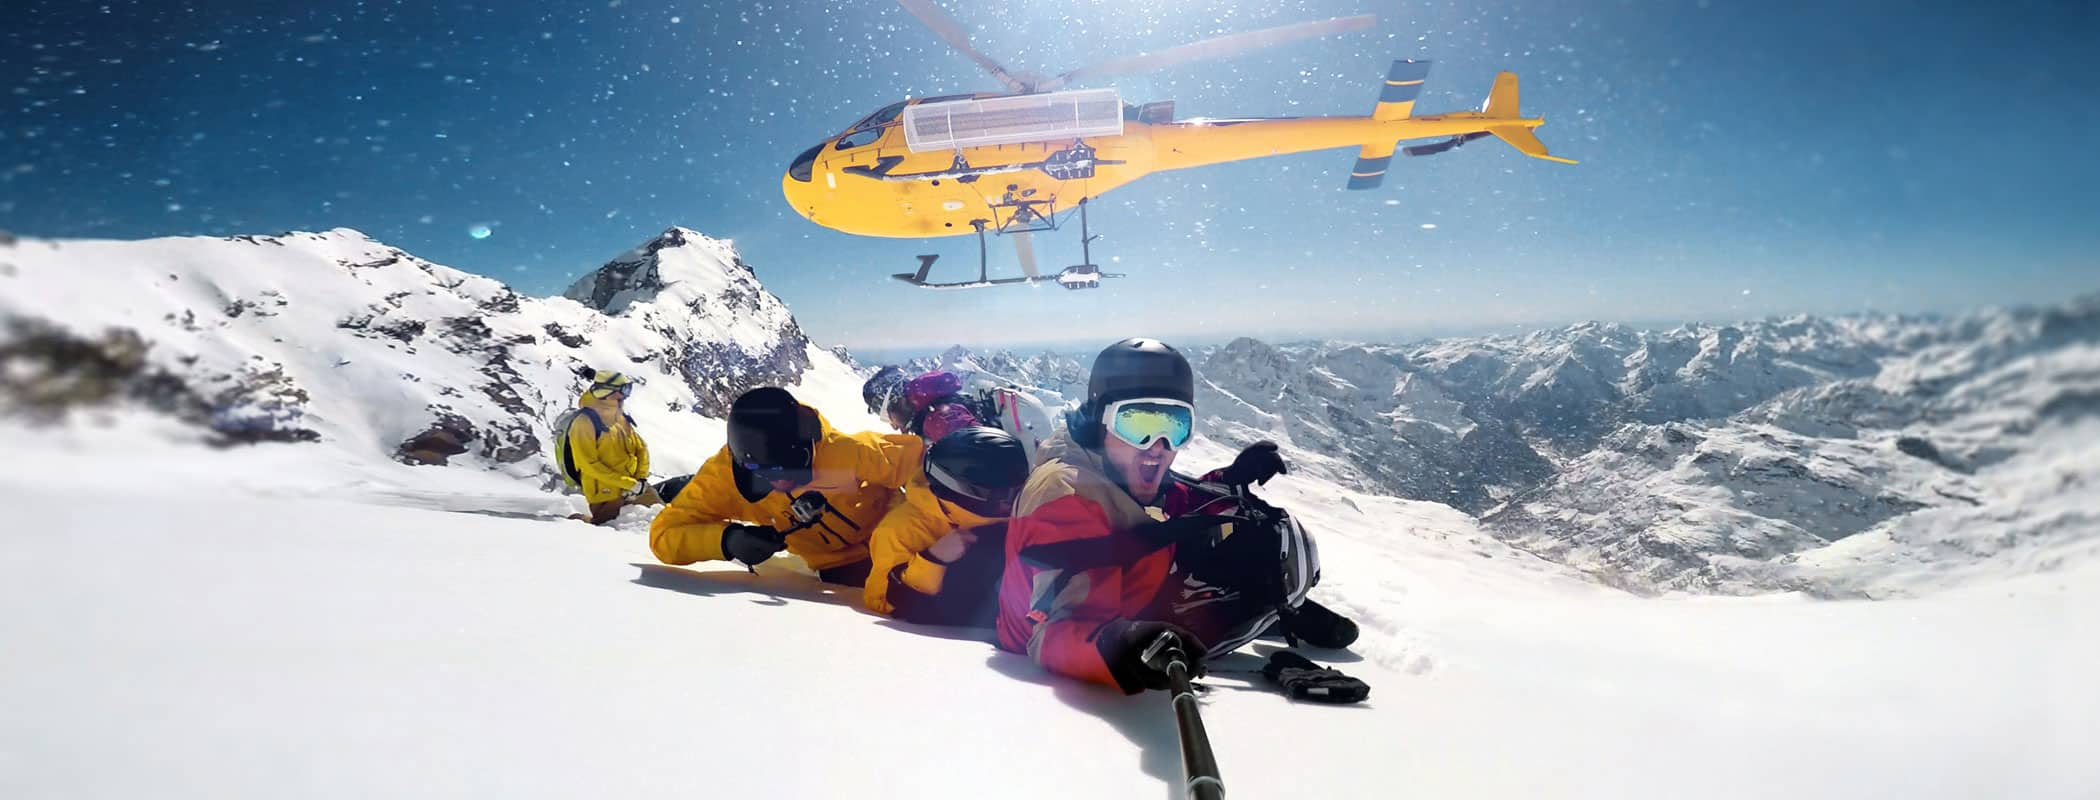 the-winter-sports-company-heli-ski